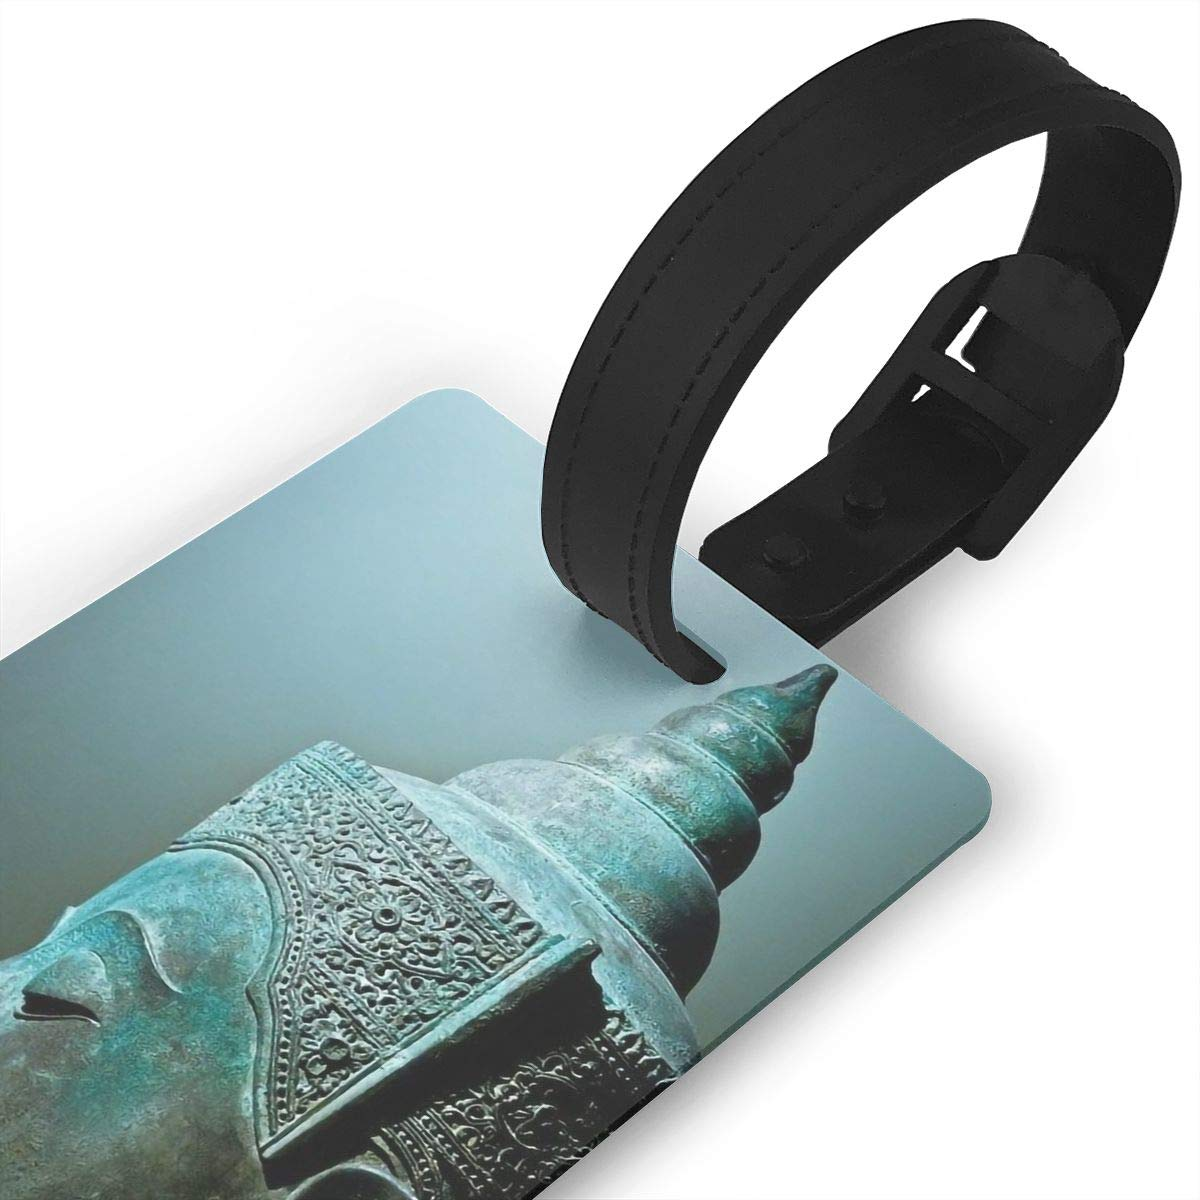 Buddhism Baggage Tag For Travel Bag Suitcase Accessories 2 Pack Luggage Tags